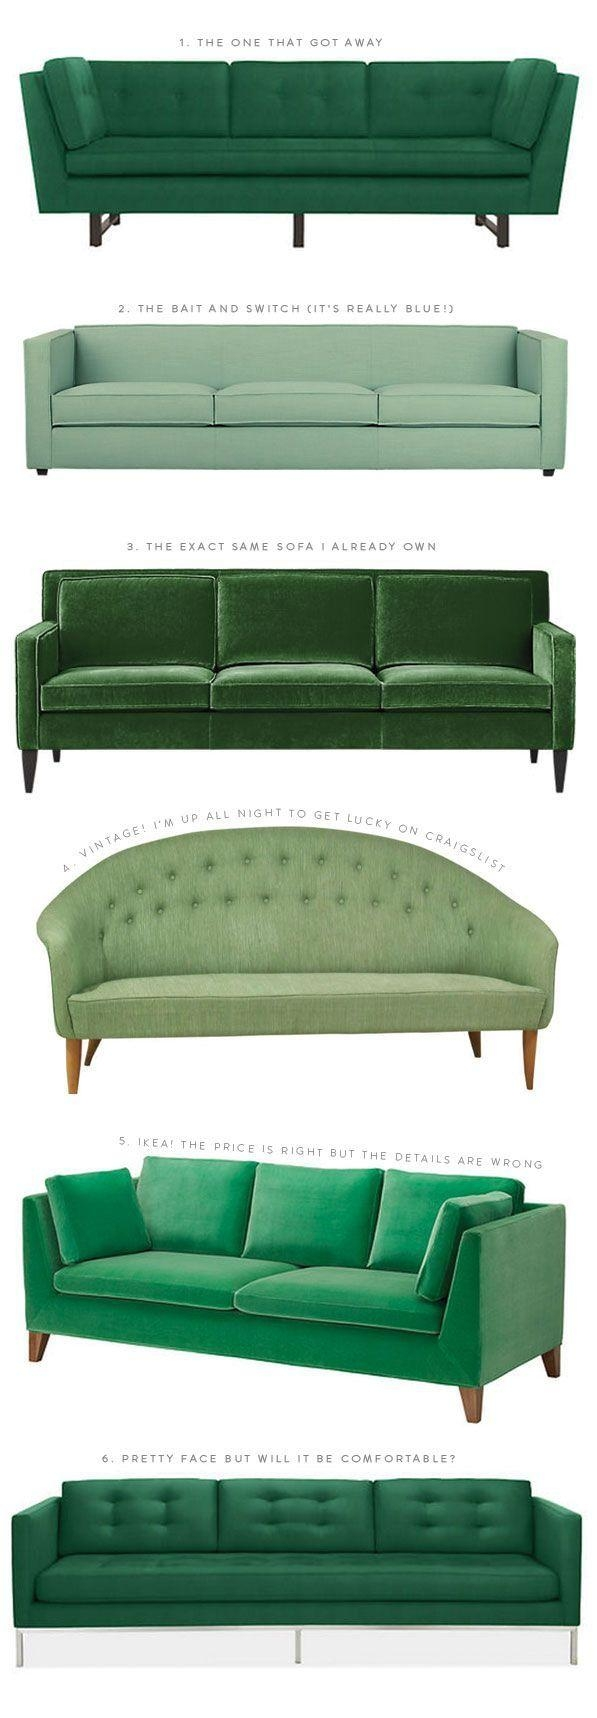 307 Best Sofas & Chairs - Ahhhhh! Images On Pinterest | Sofas within Chintz Sofas And Chairs